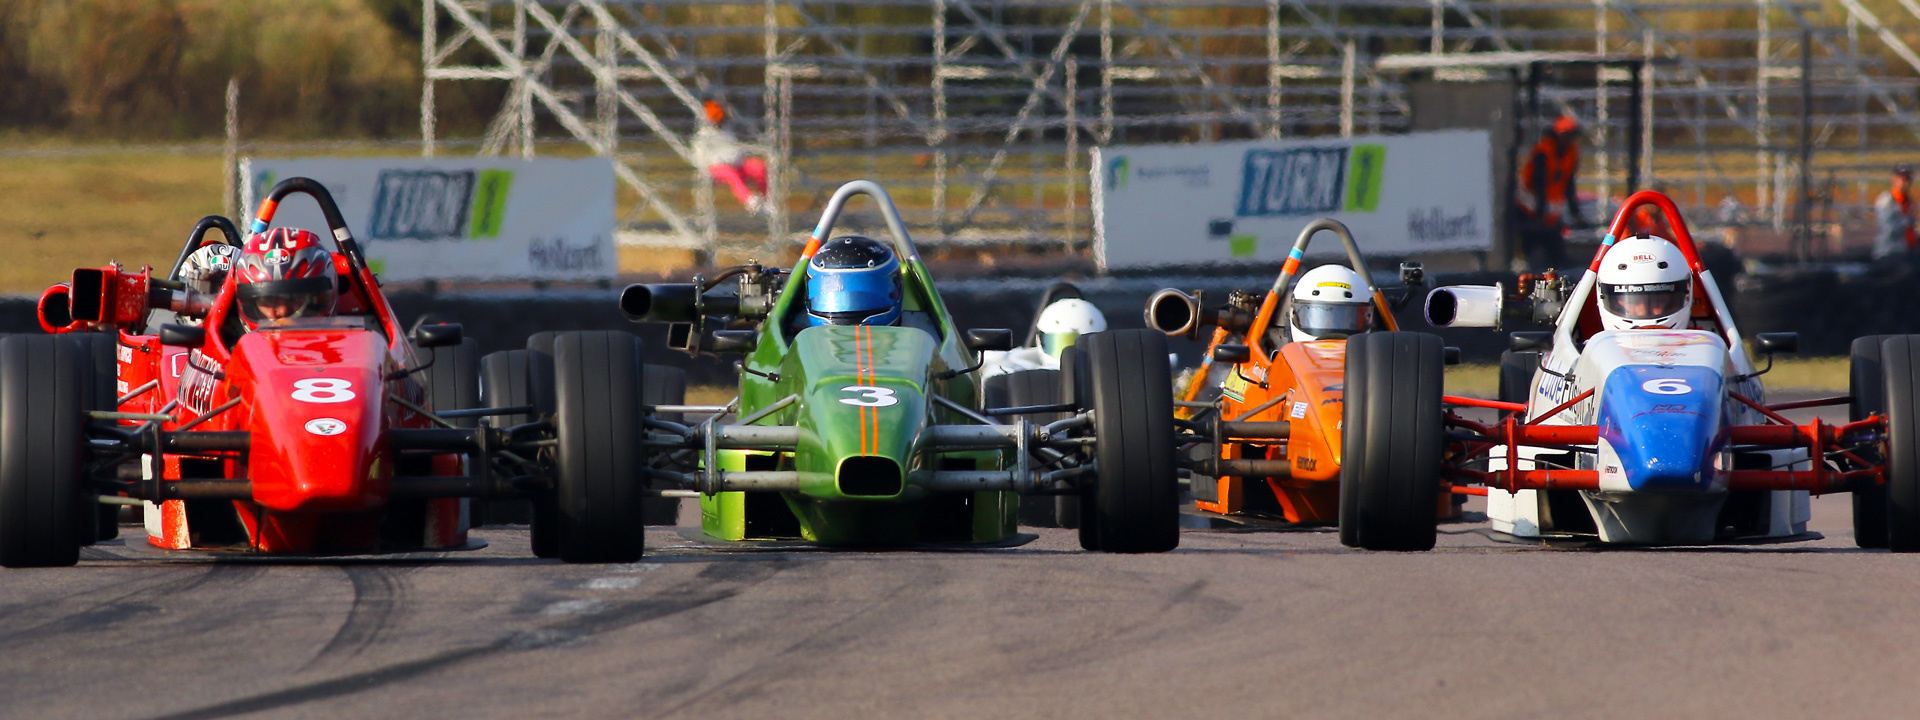 Hankook Formula Vee Round 3 - 21 May 2016 - Zwartkops Raceway - Race Report